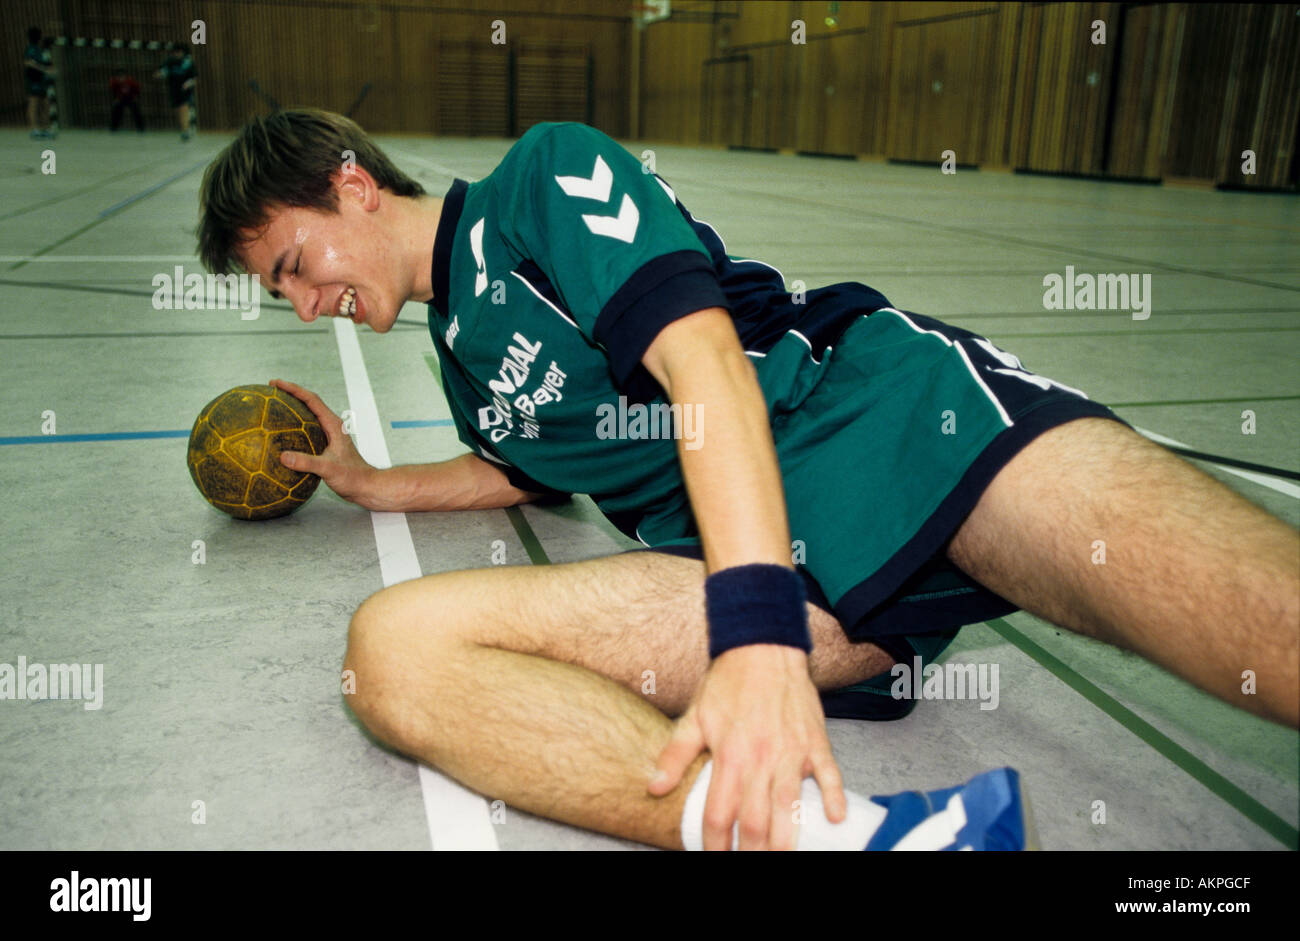 Germany Free time Handball player he is injured and lieing on the floor  - Stock Image